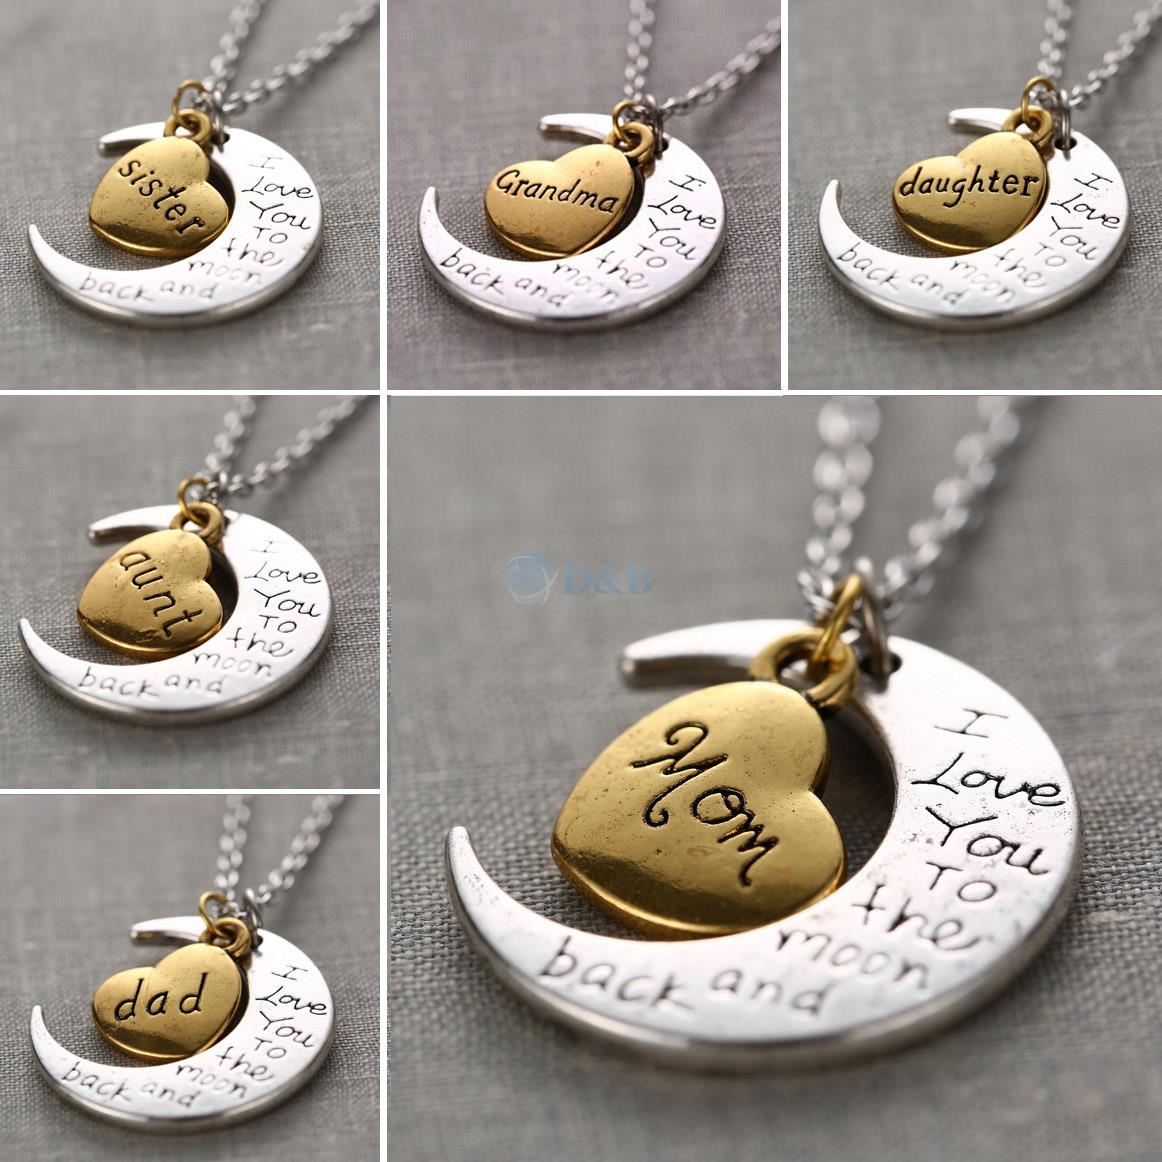 I Love You To The Moon And Back Silver Necklace Vintage Family Necklaces Pendants Fashion Women Jewelry Mom Christmas Gift(China (Mainland))